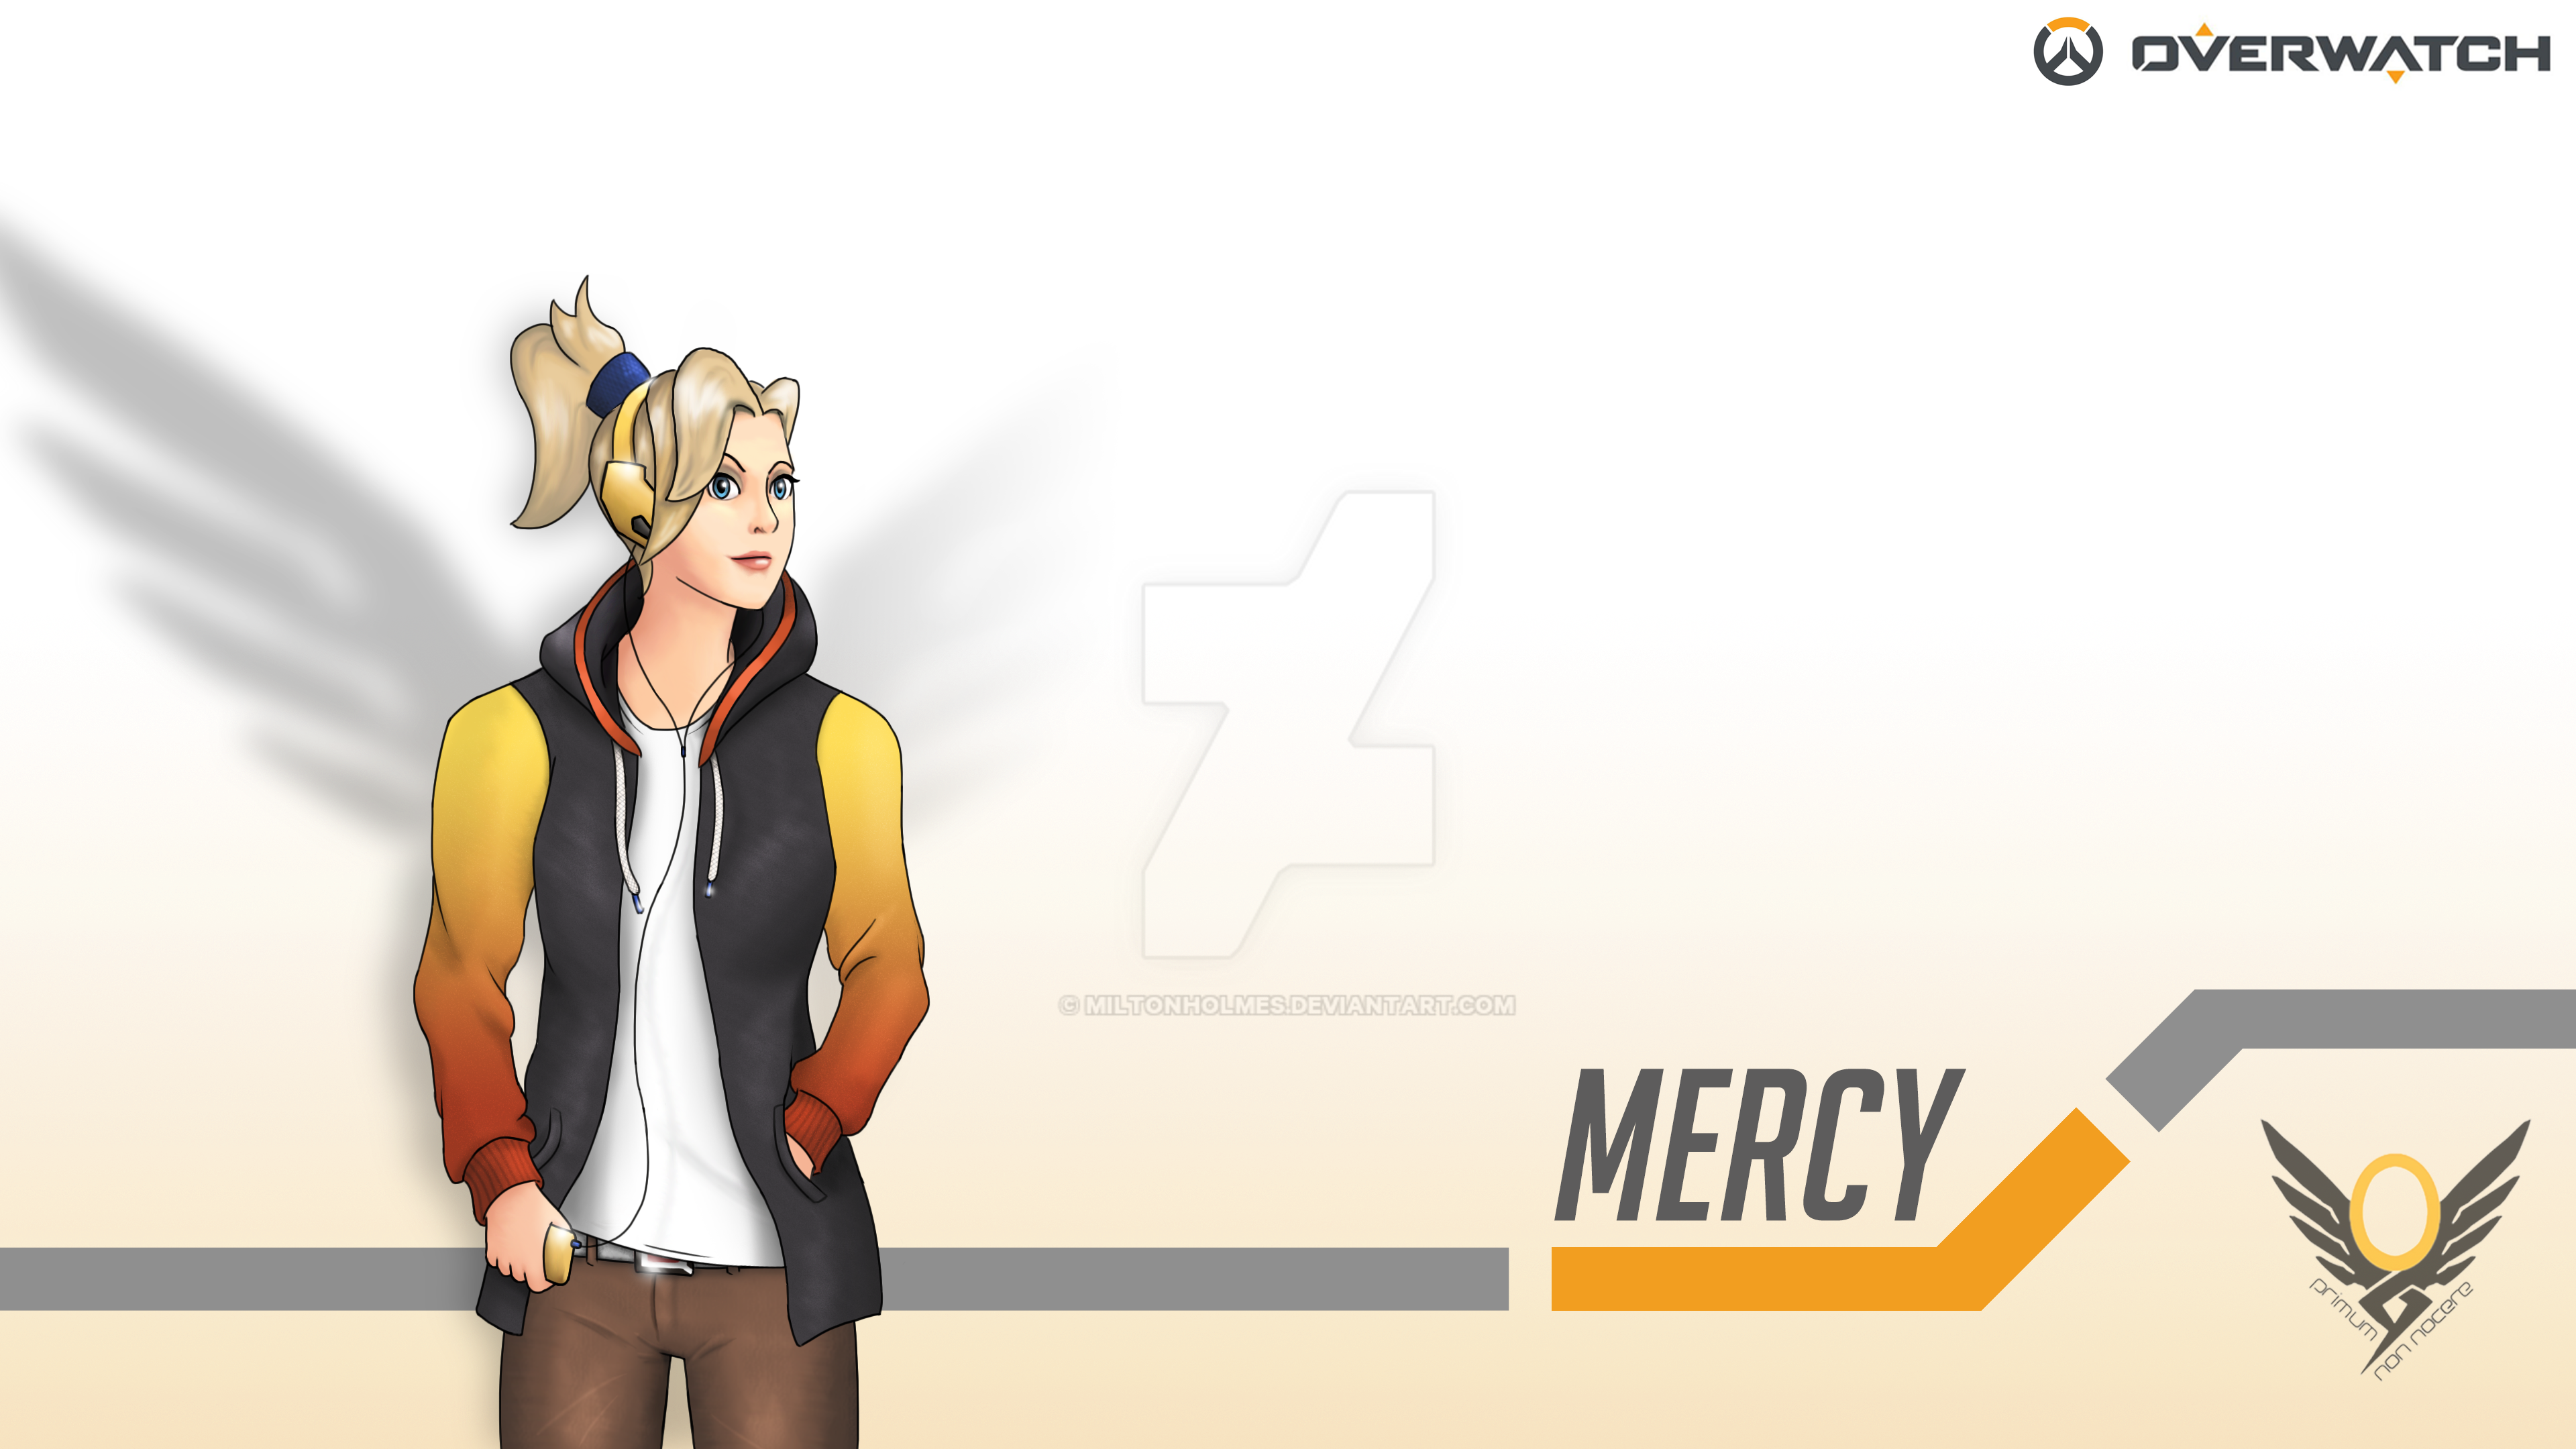 Casual Overwatch - Mercy (4K Wallpaper) by Miltonholmes